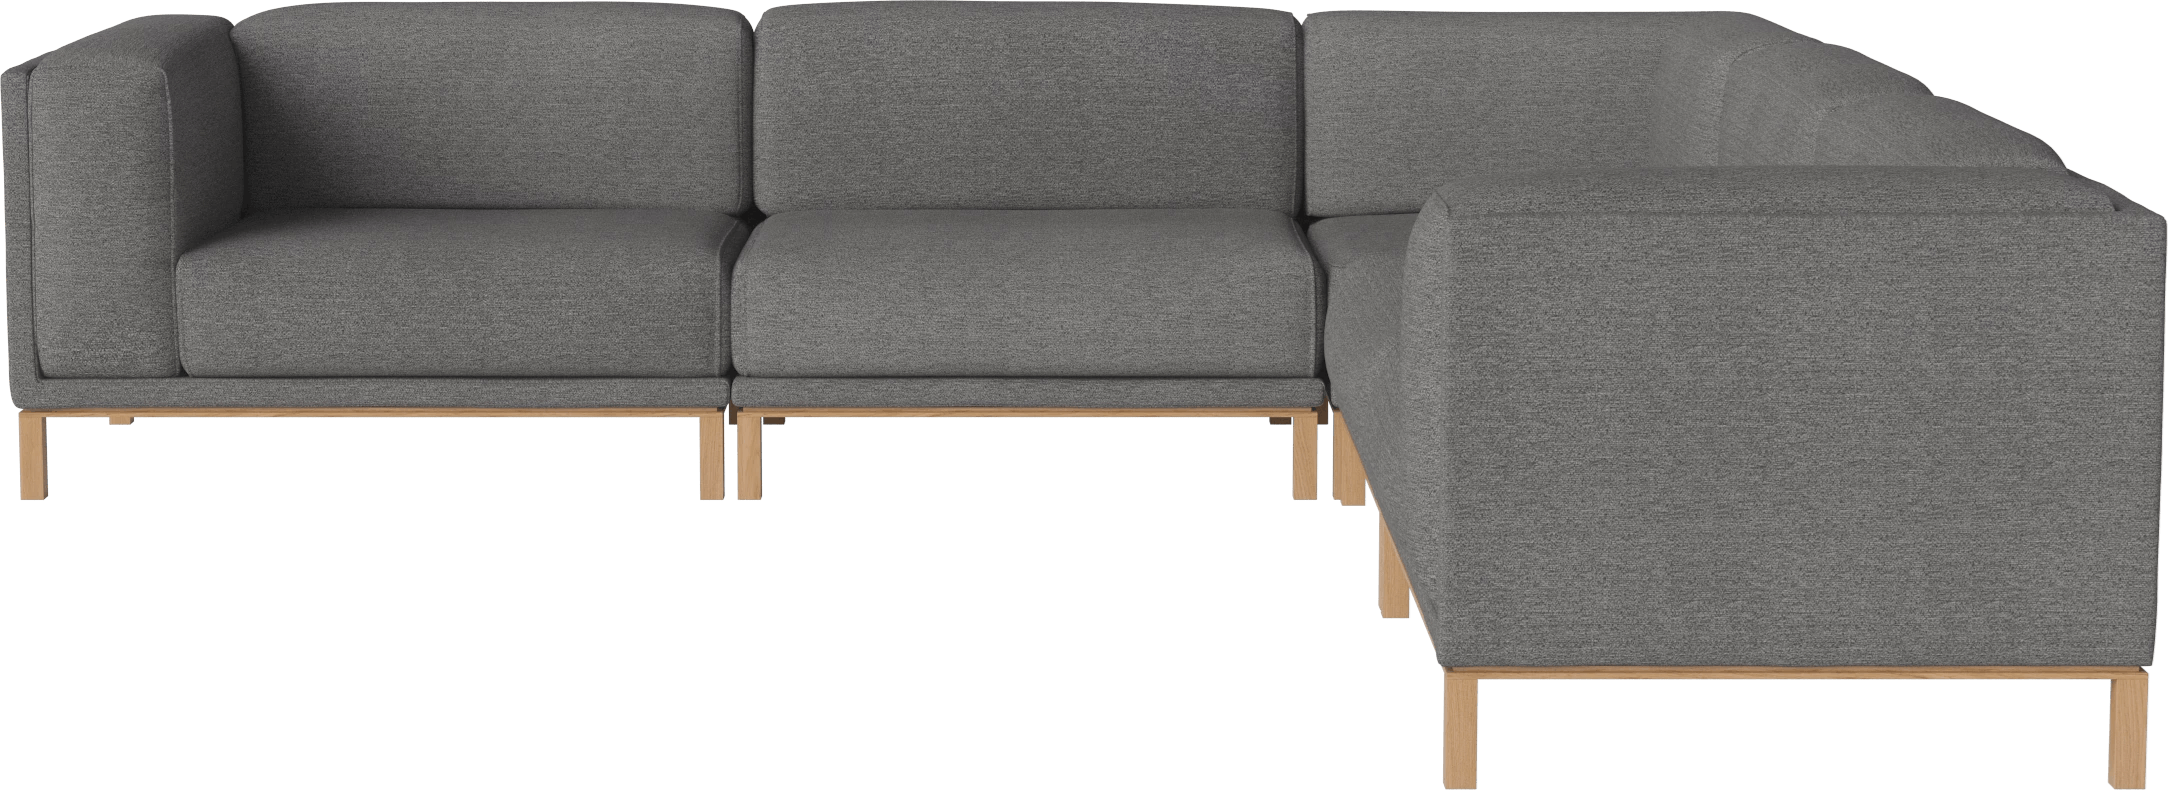 bolia grey cosy sofa sectional haute living